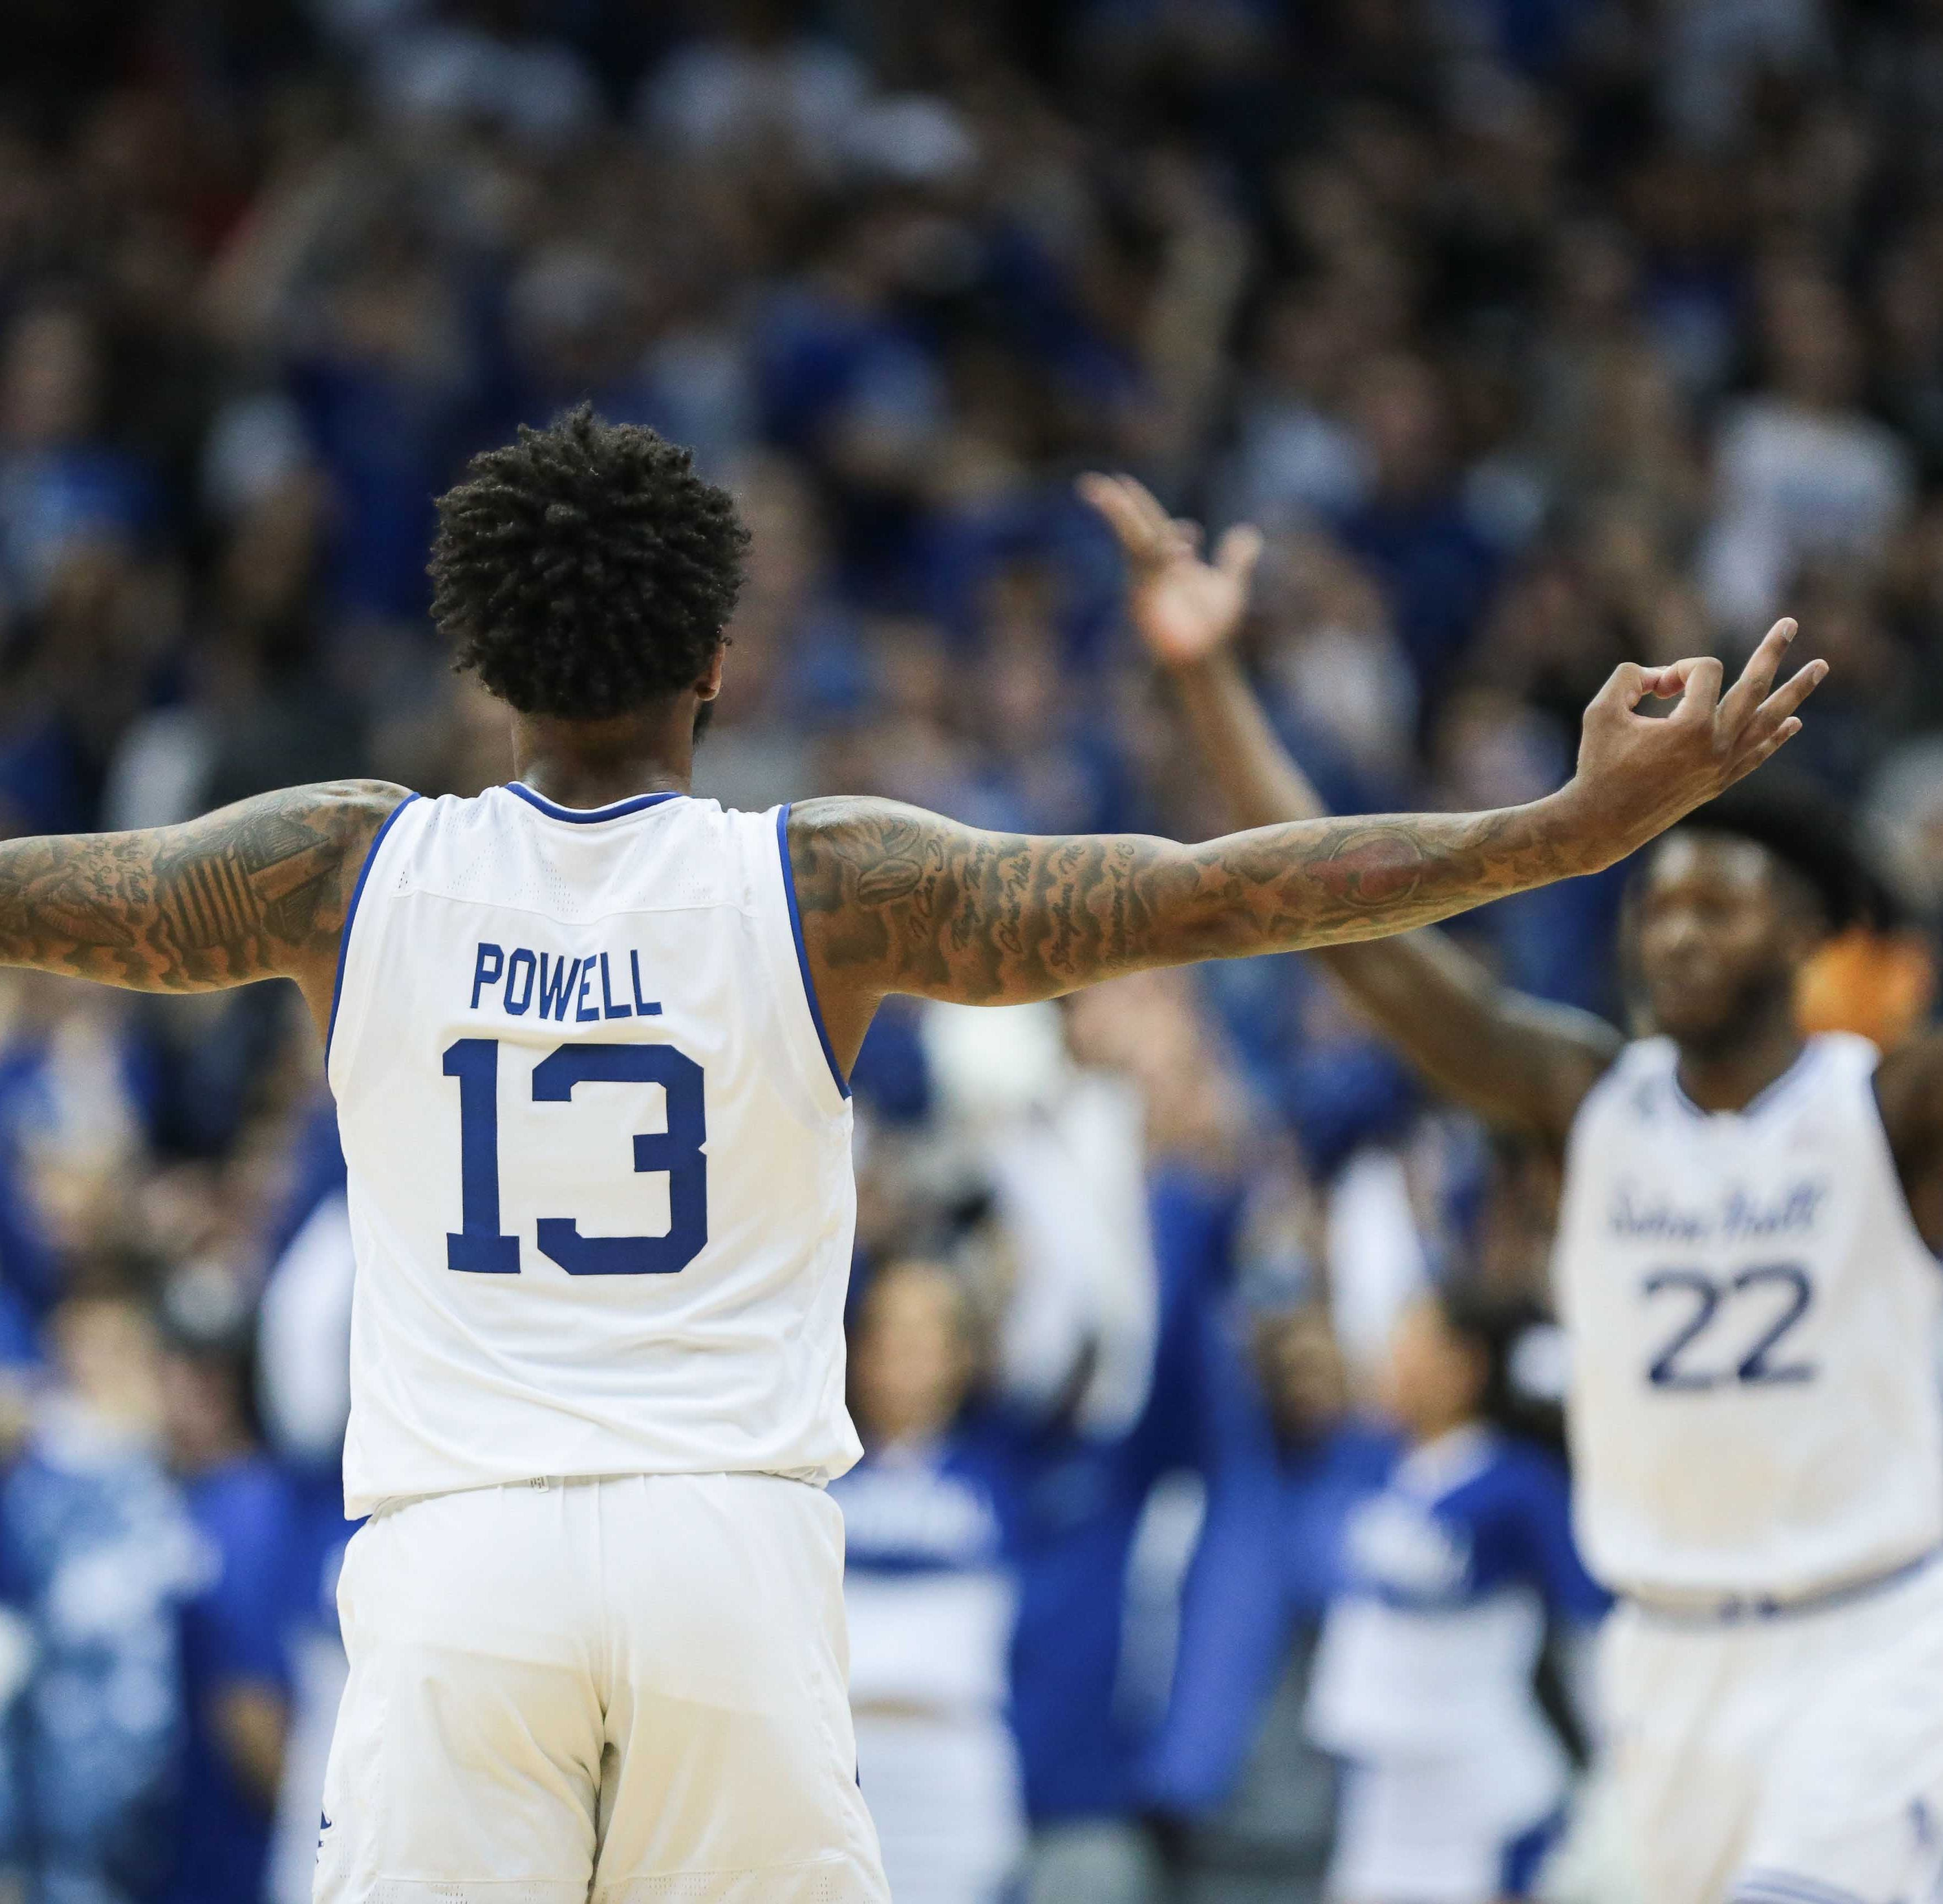 Seton Hall basketball: Myles Powell earns honorable mention AP All-America honors